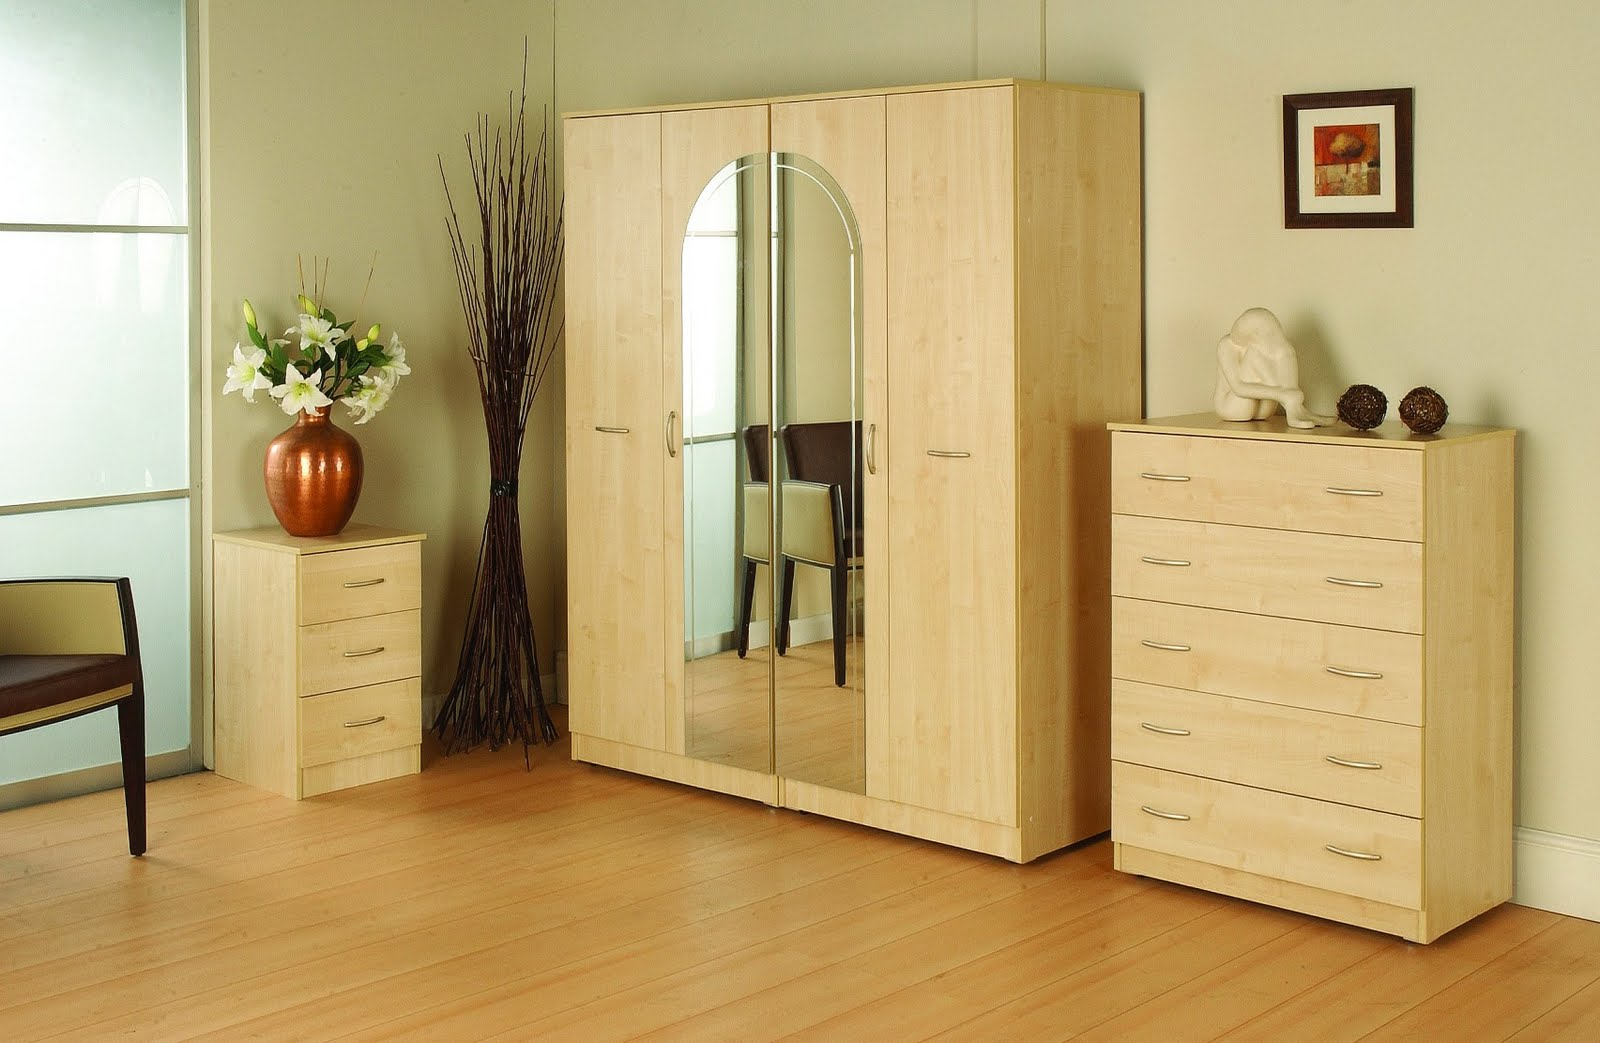 Furniture Design Wardrobes For Bedroom 28+ [ bedroom wardrobe design ] | home interior designs bedroom